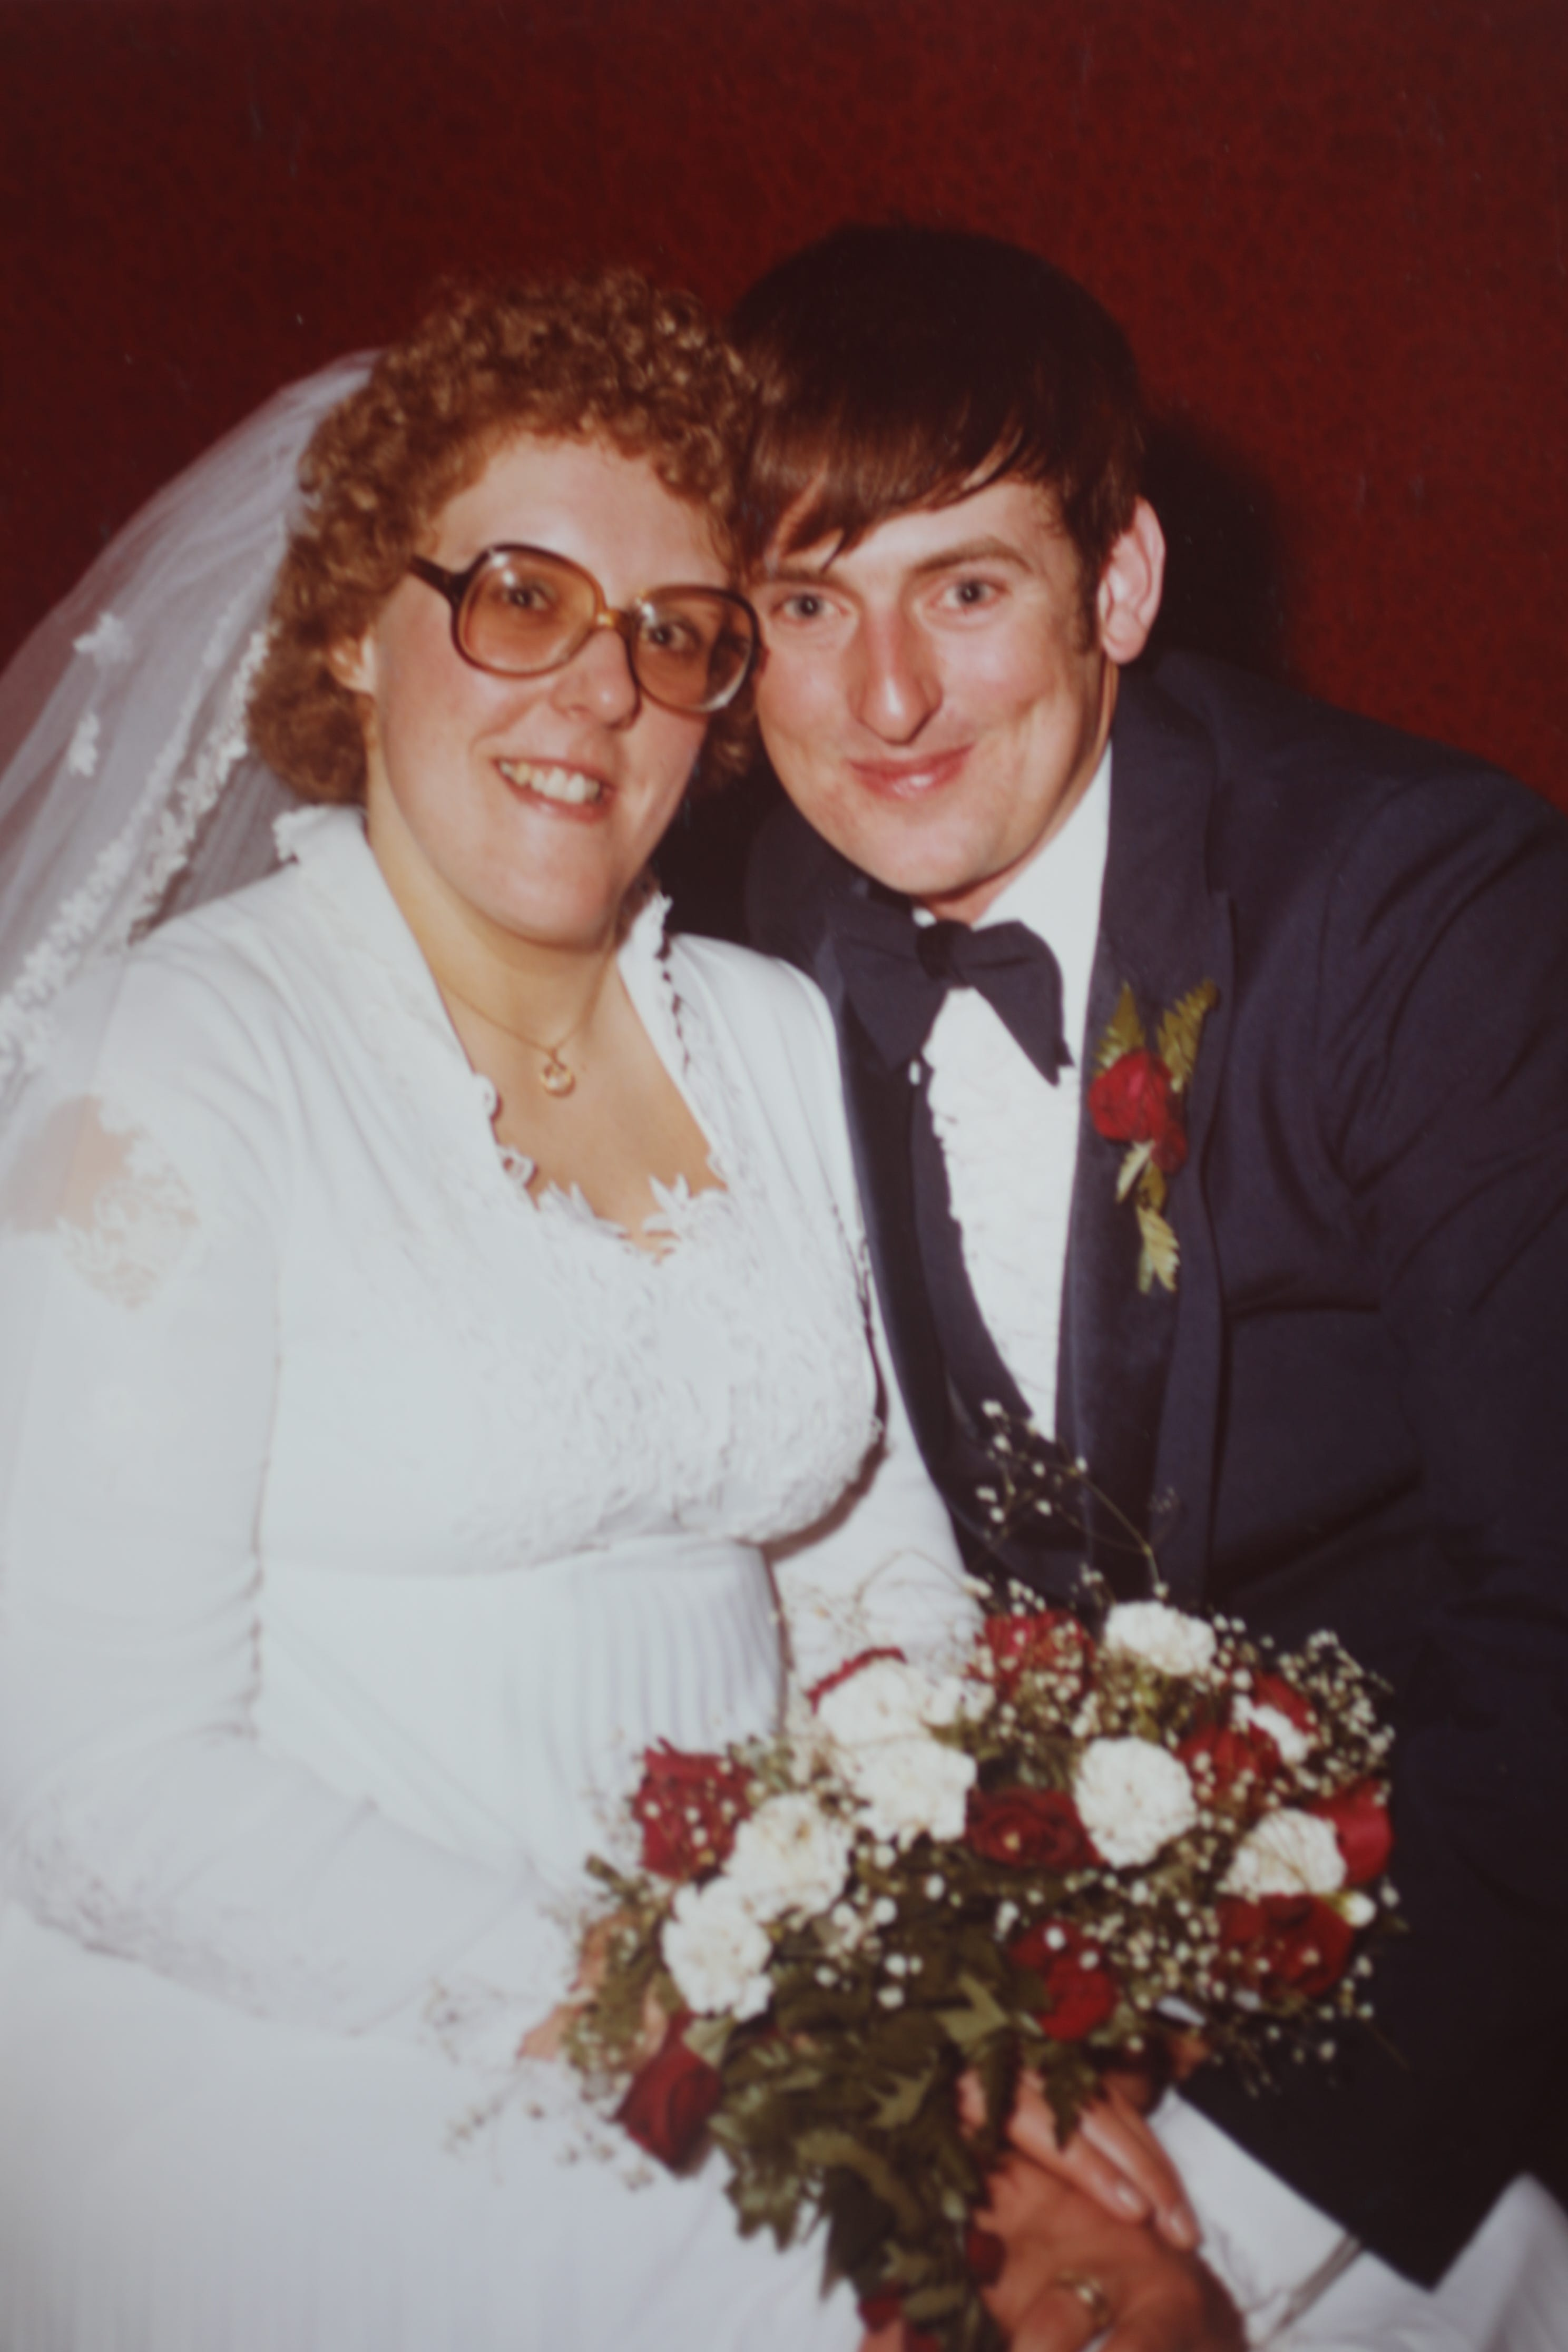 Barbara and Bill Birchenough's wedding photo is shown here.  The couple was married for approximately 41 years.